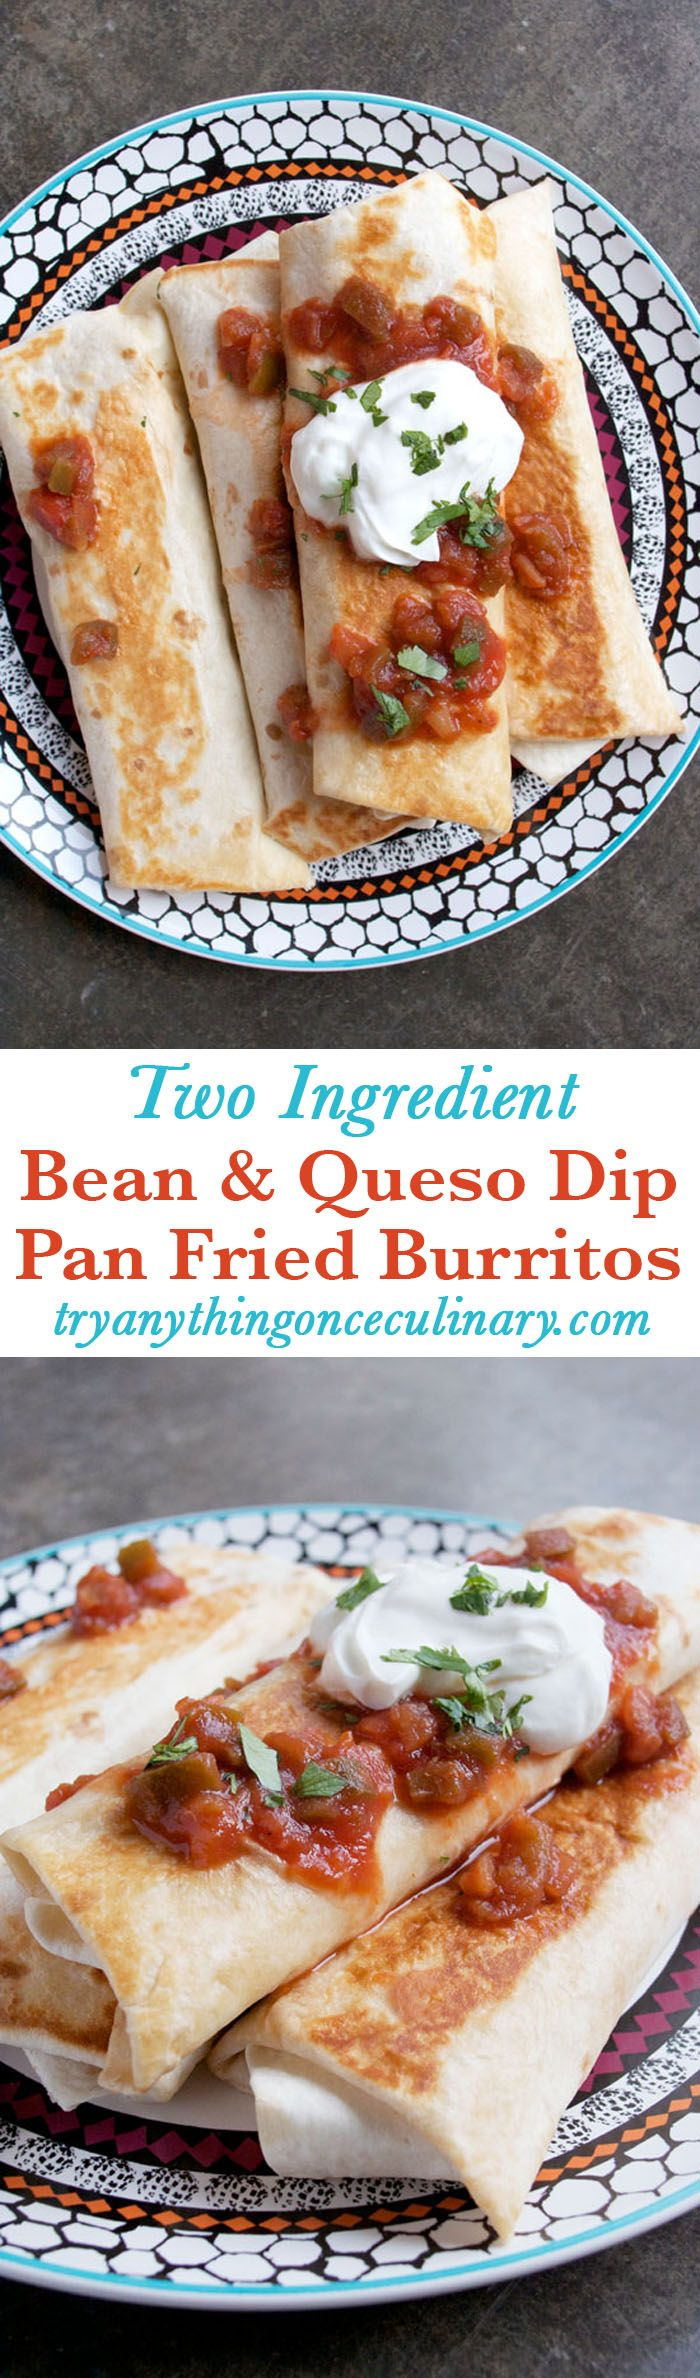 queso dip pan fried burritos recipe quick weeknight dinners